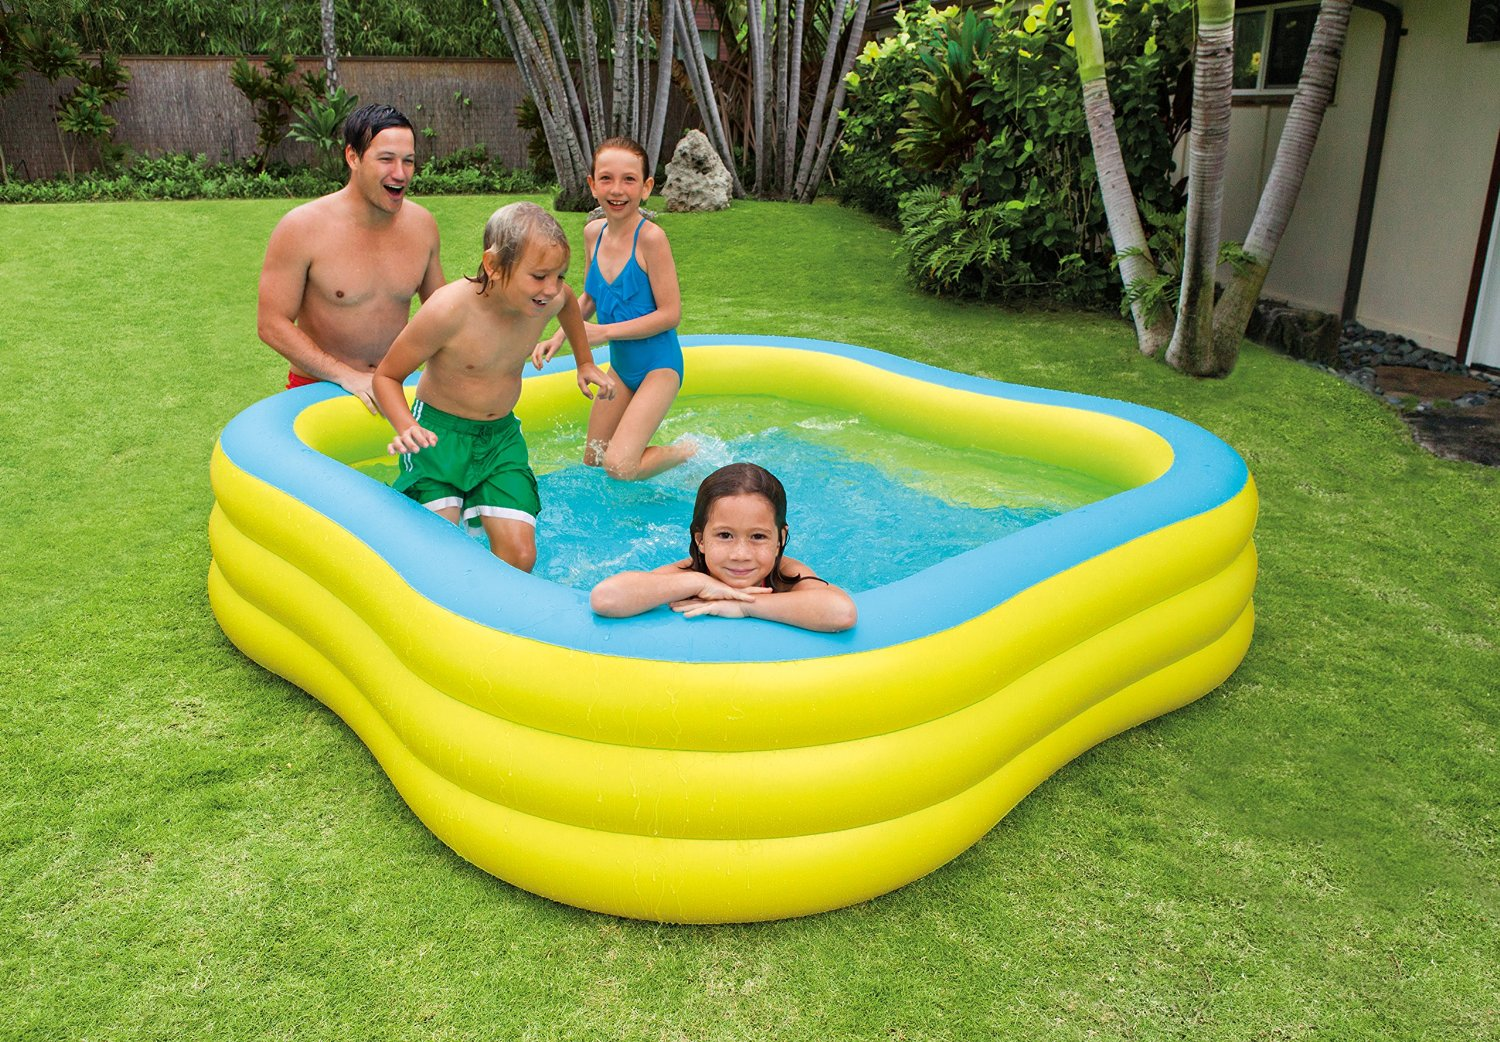 Piscine gonflable carr intex wave swim center pool for Piscine intex gonflable